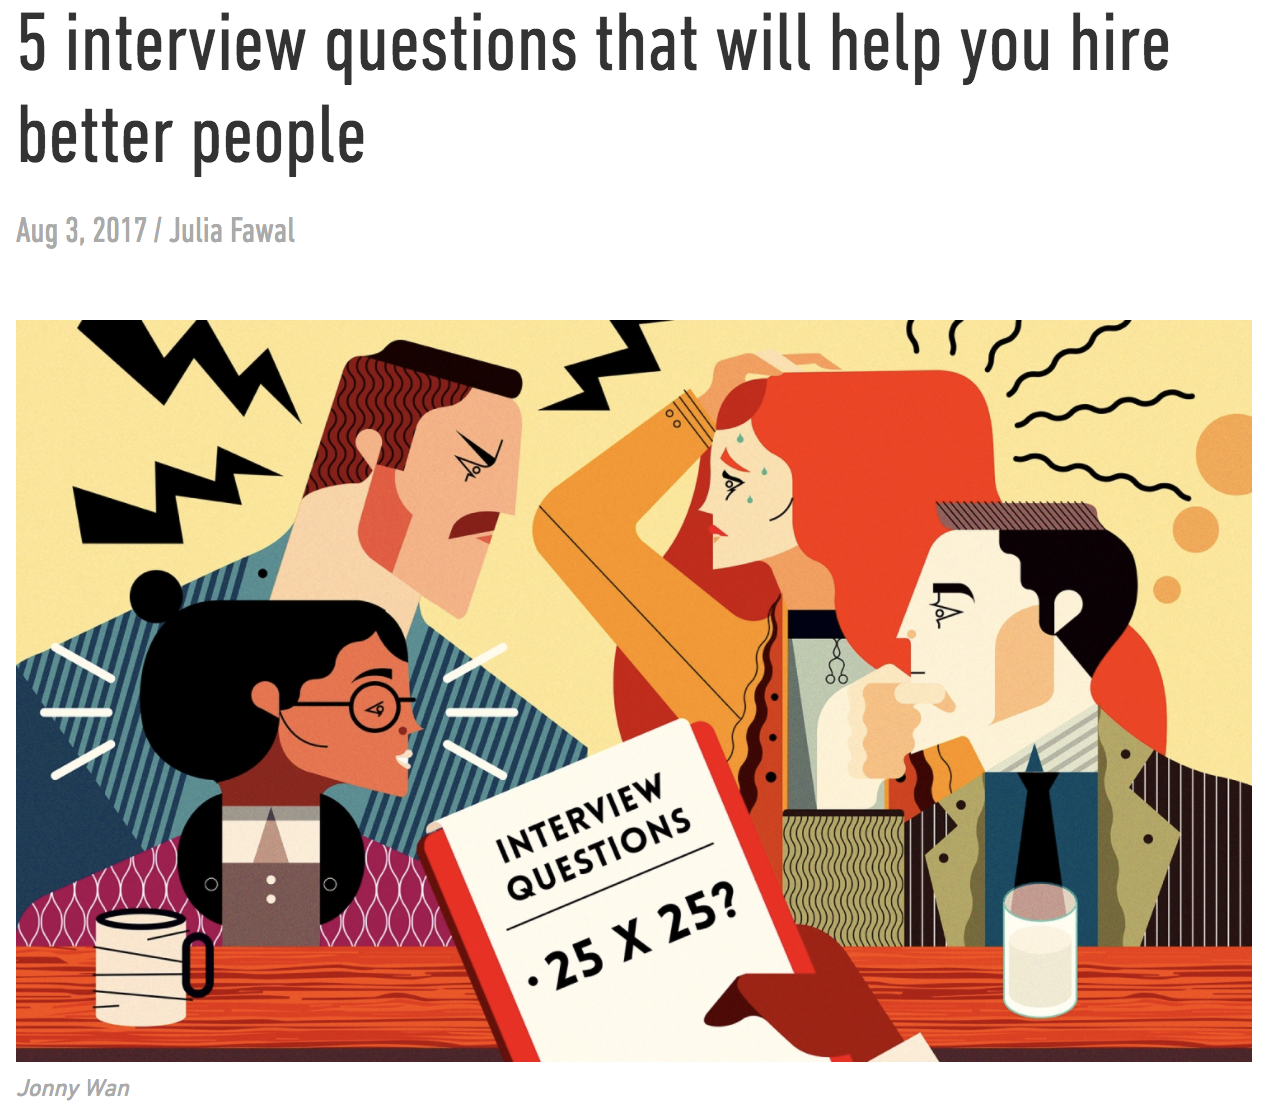 TED Ideas interview questions